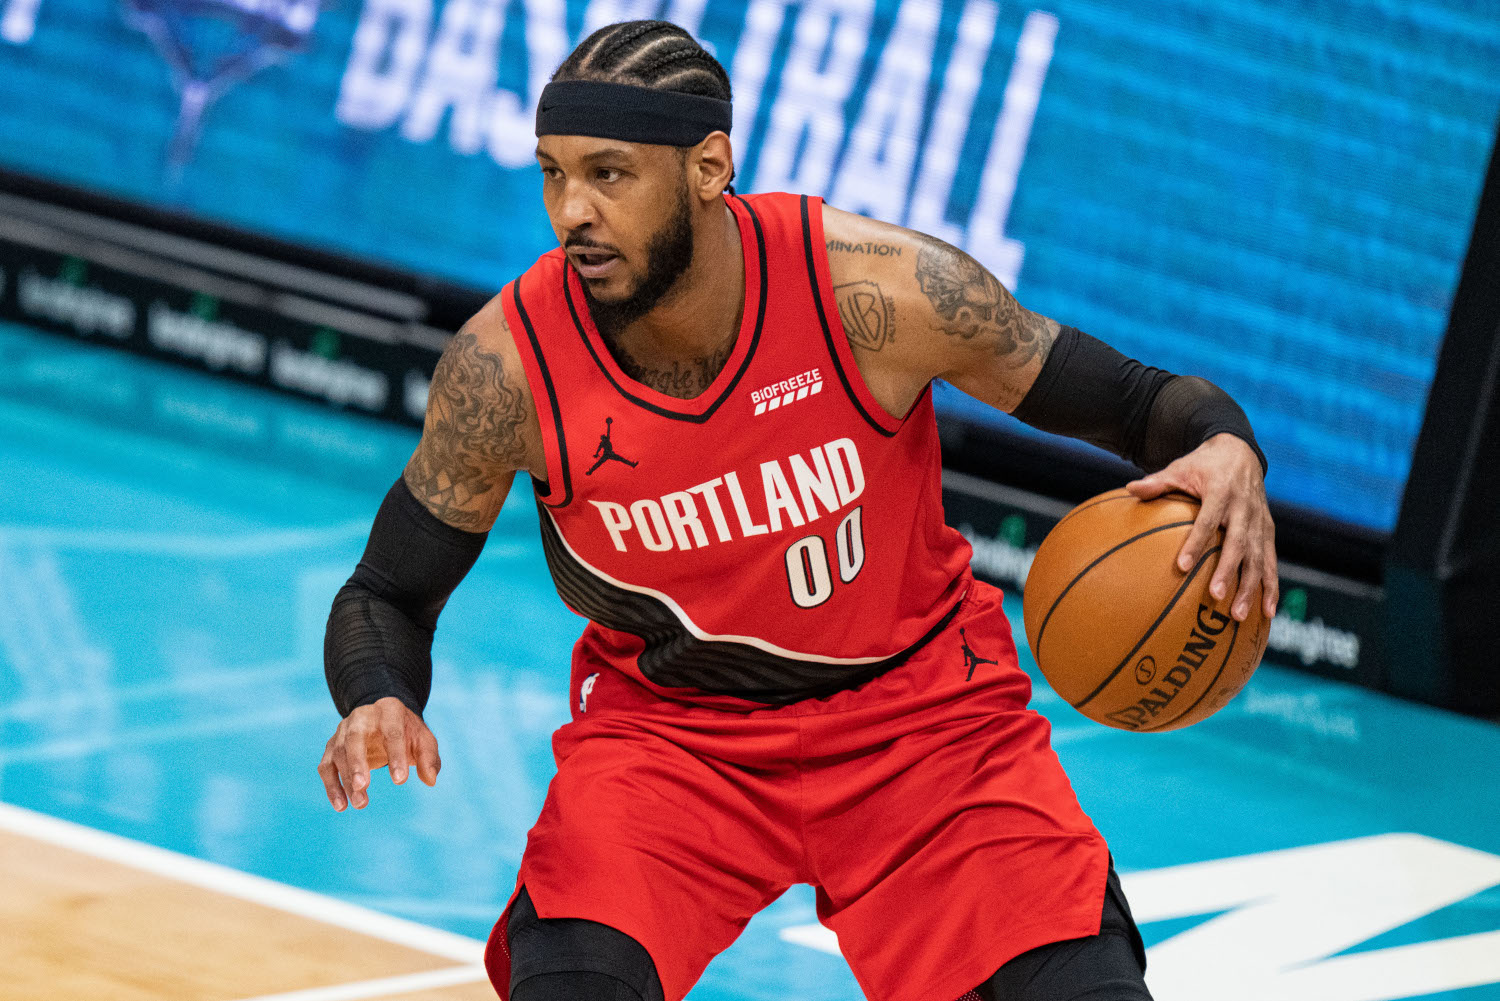 Carmelo Anthony of the Portland Trail Blazers